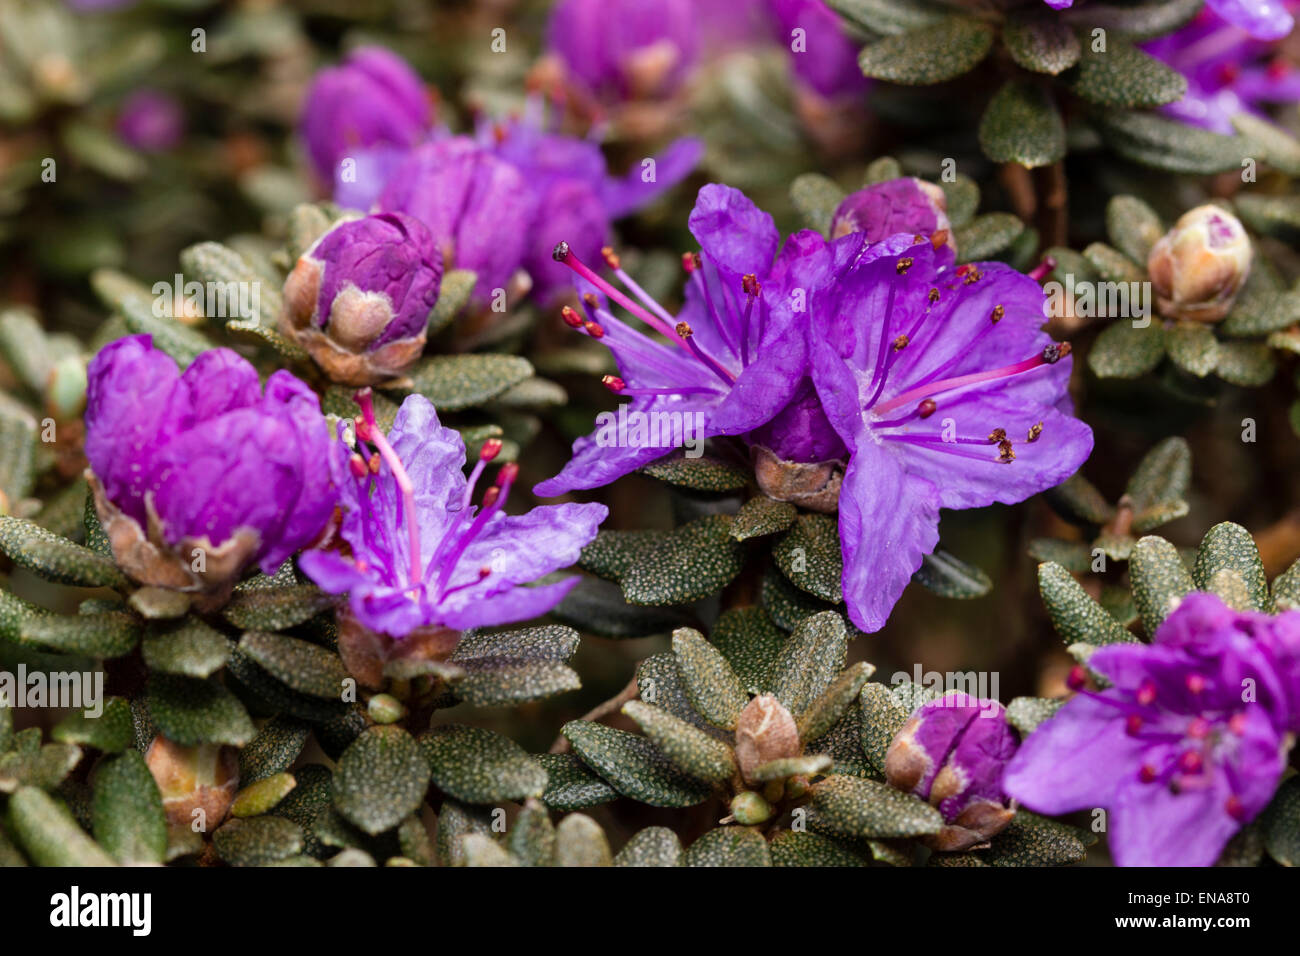 Spring flowers and scaly foliage of Rhododendron impeditum 'Indigo' - Stock Image